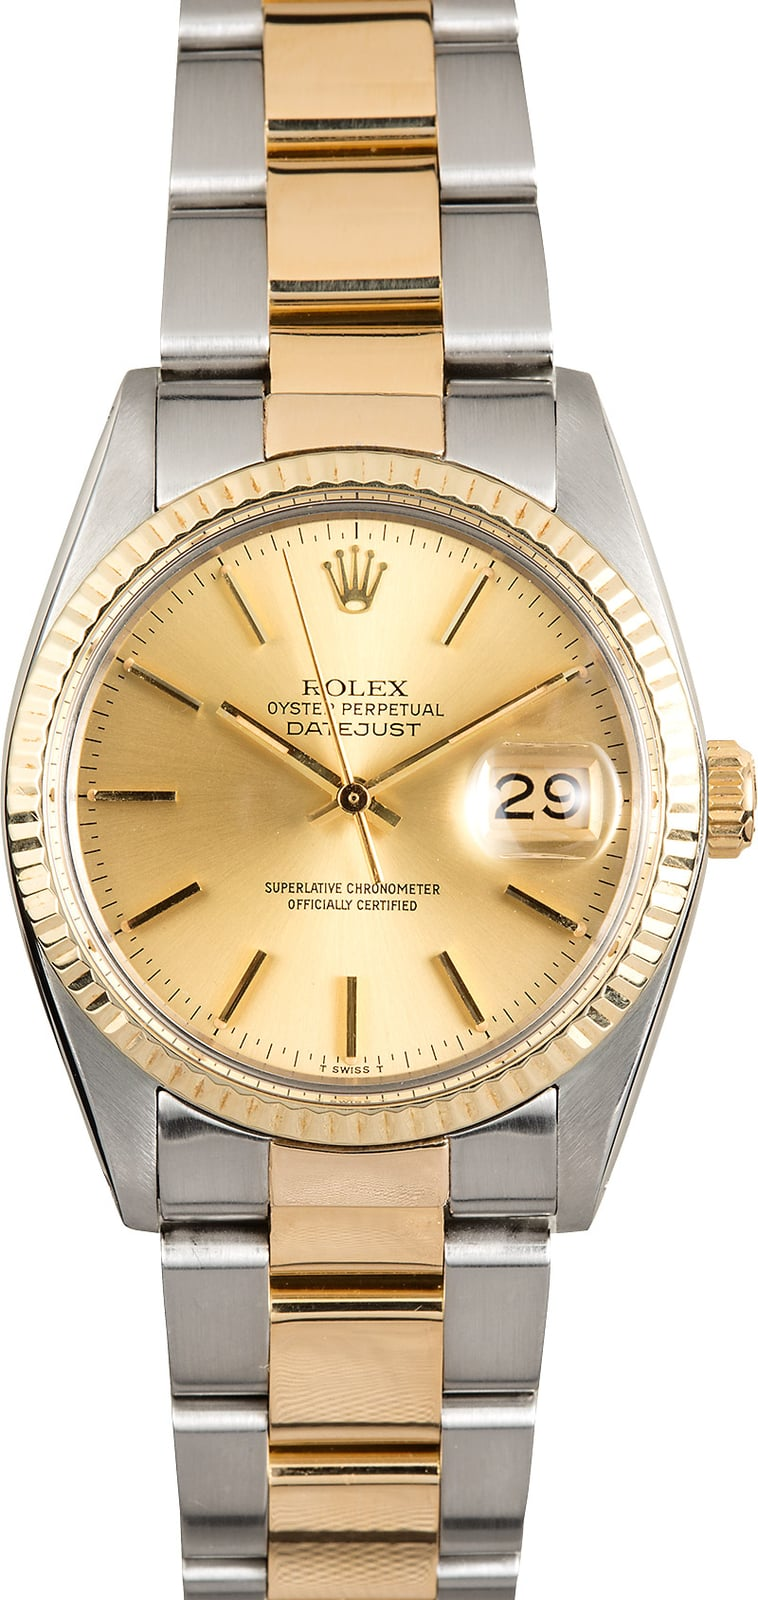 silver rolex watch automatic watches bezel fluted bracelet dial index case white datejust gold jubilee stainless steel